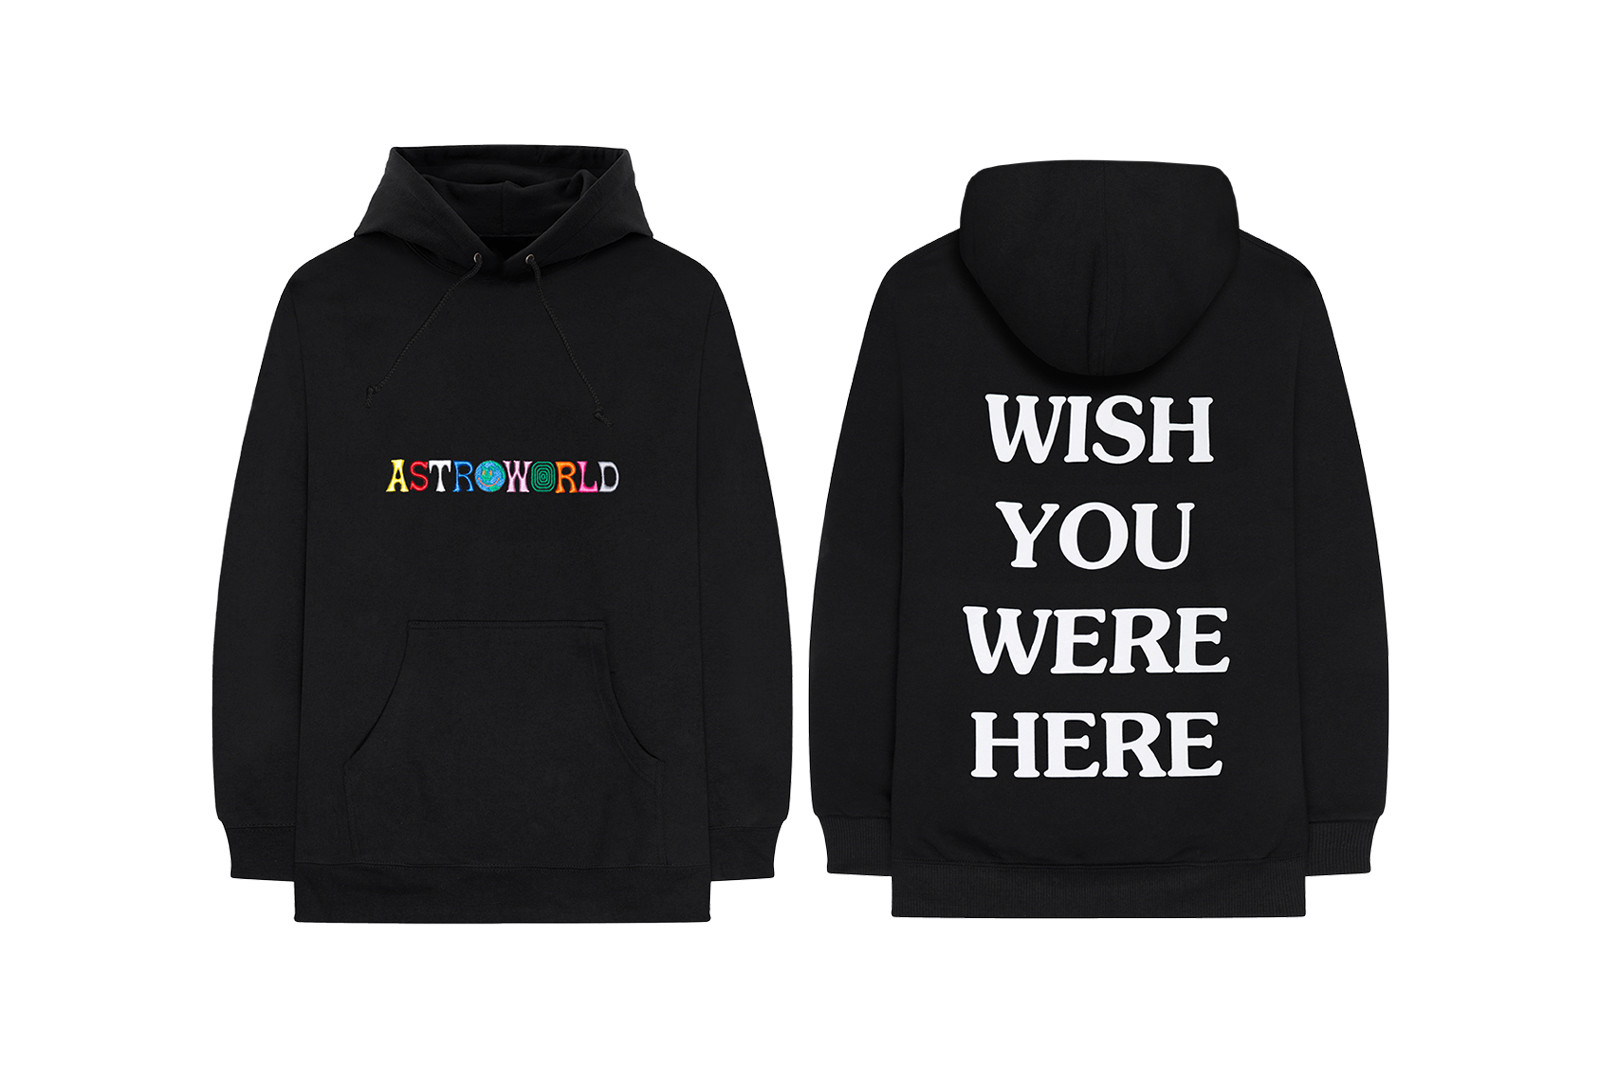 Travis Scott's First 'Astroworld' Merch Collection Is Now Live For 24hrs